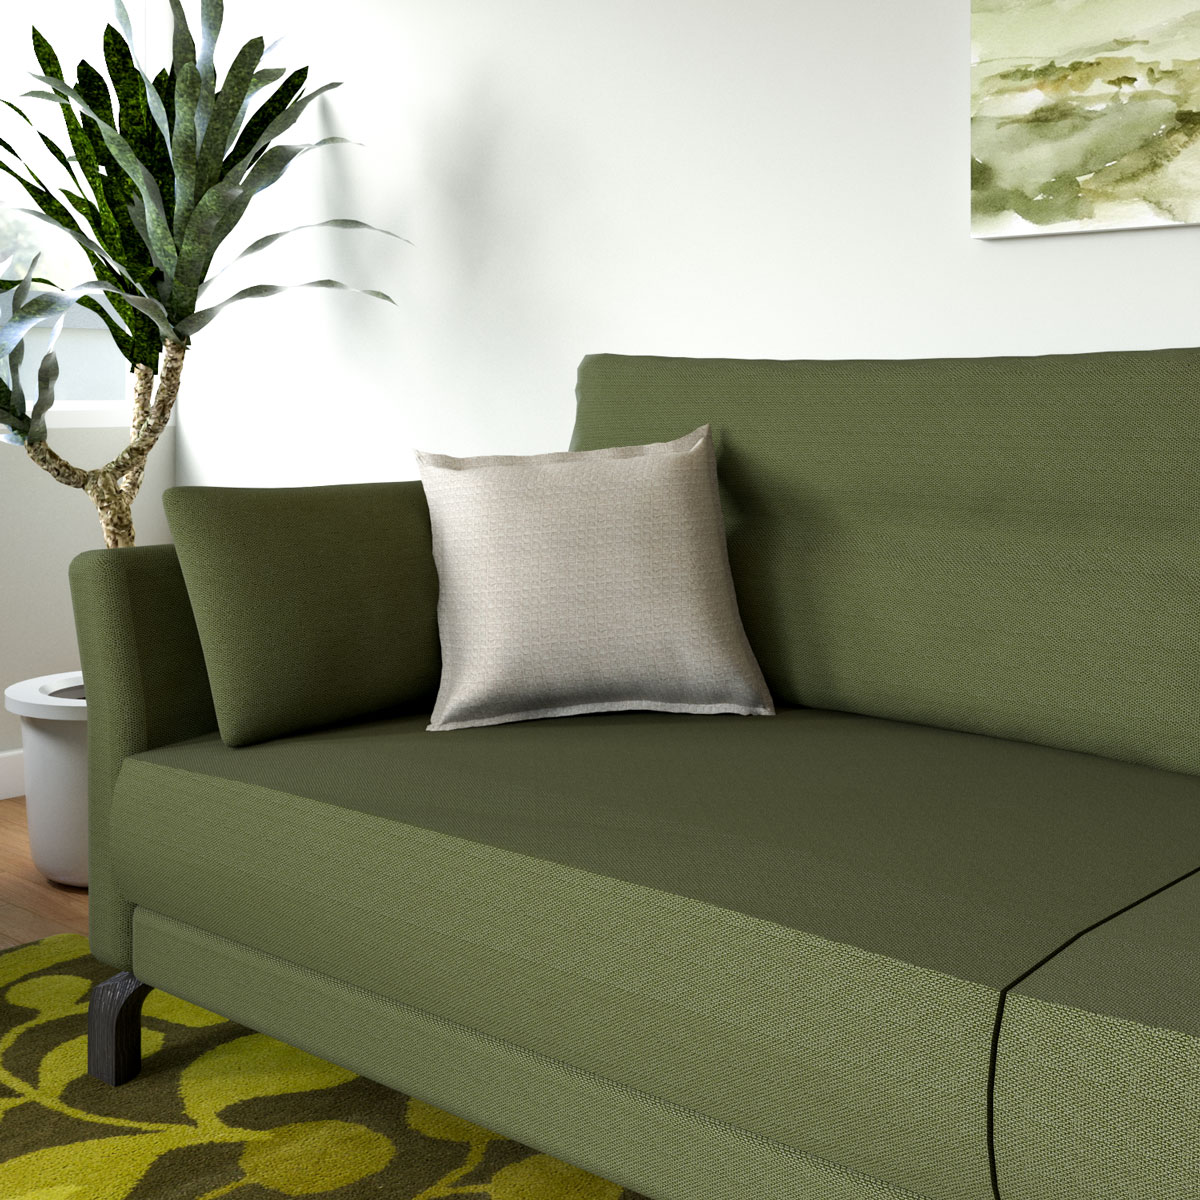 What Color Throw Pillows For Olive Green Couch Roomdsign Com